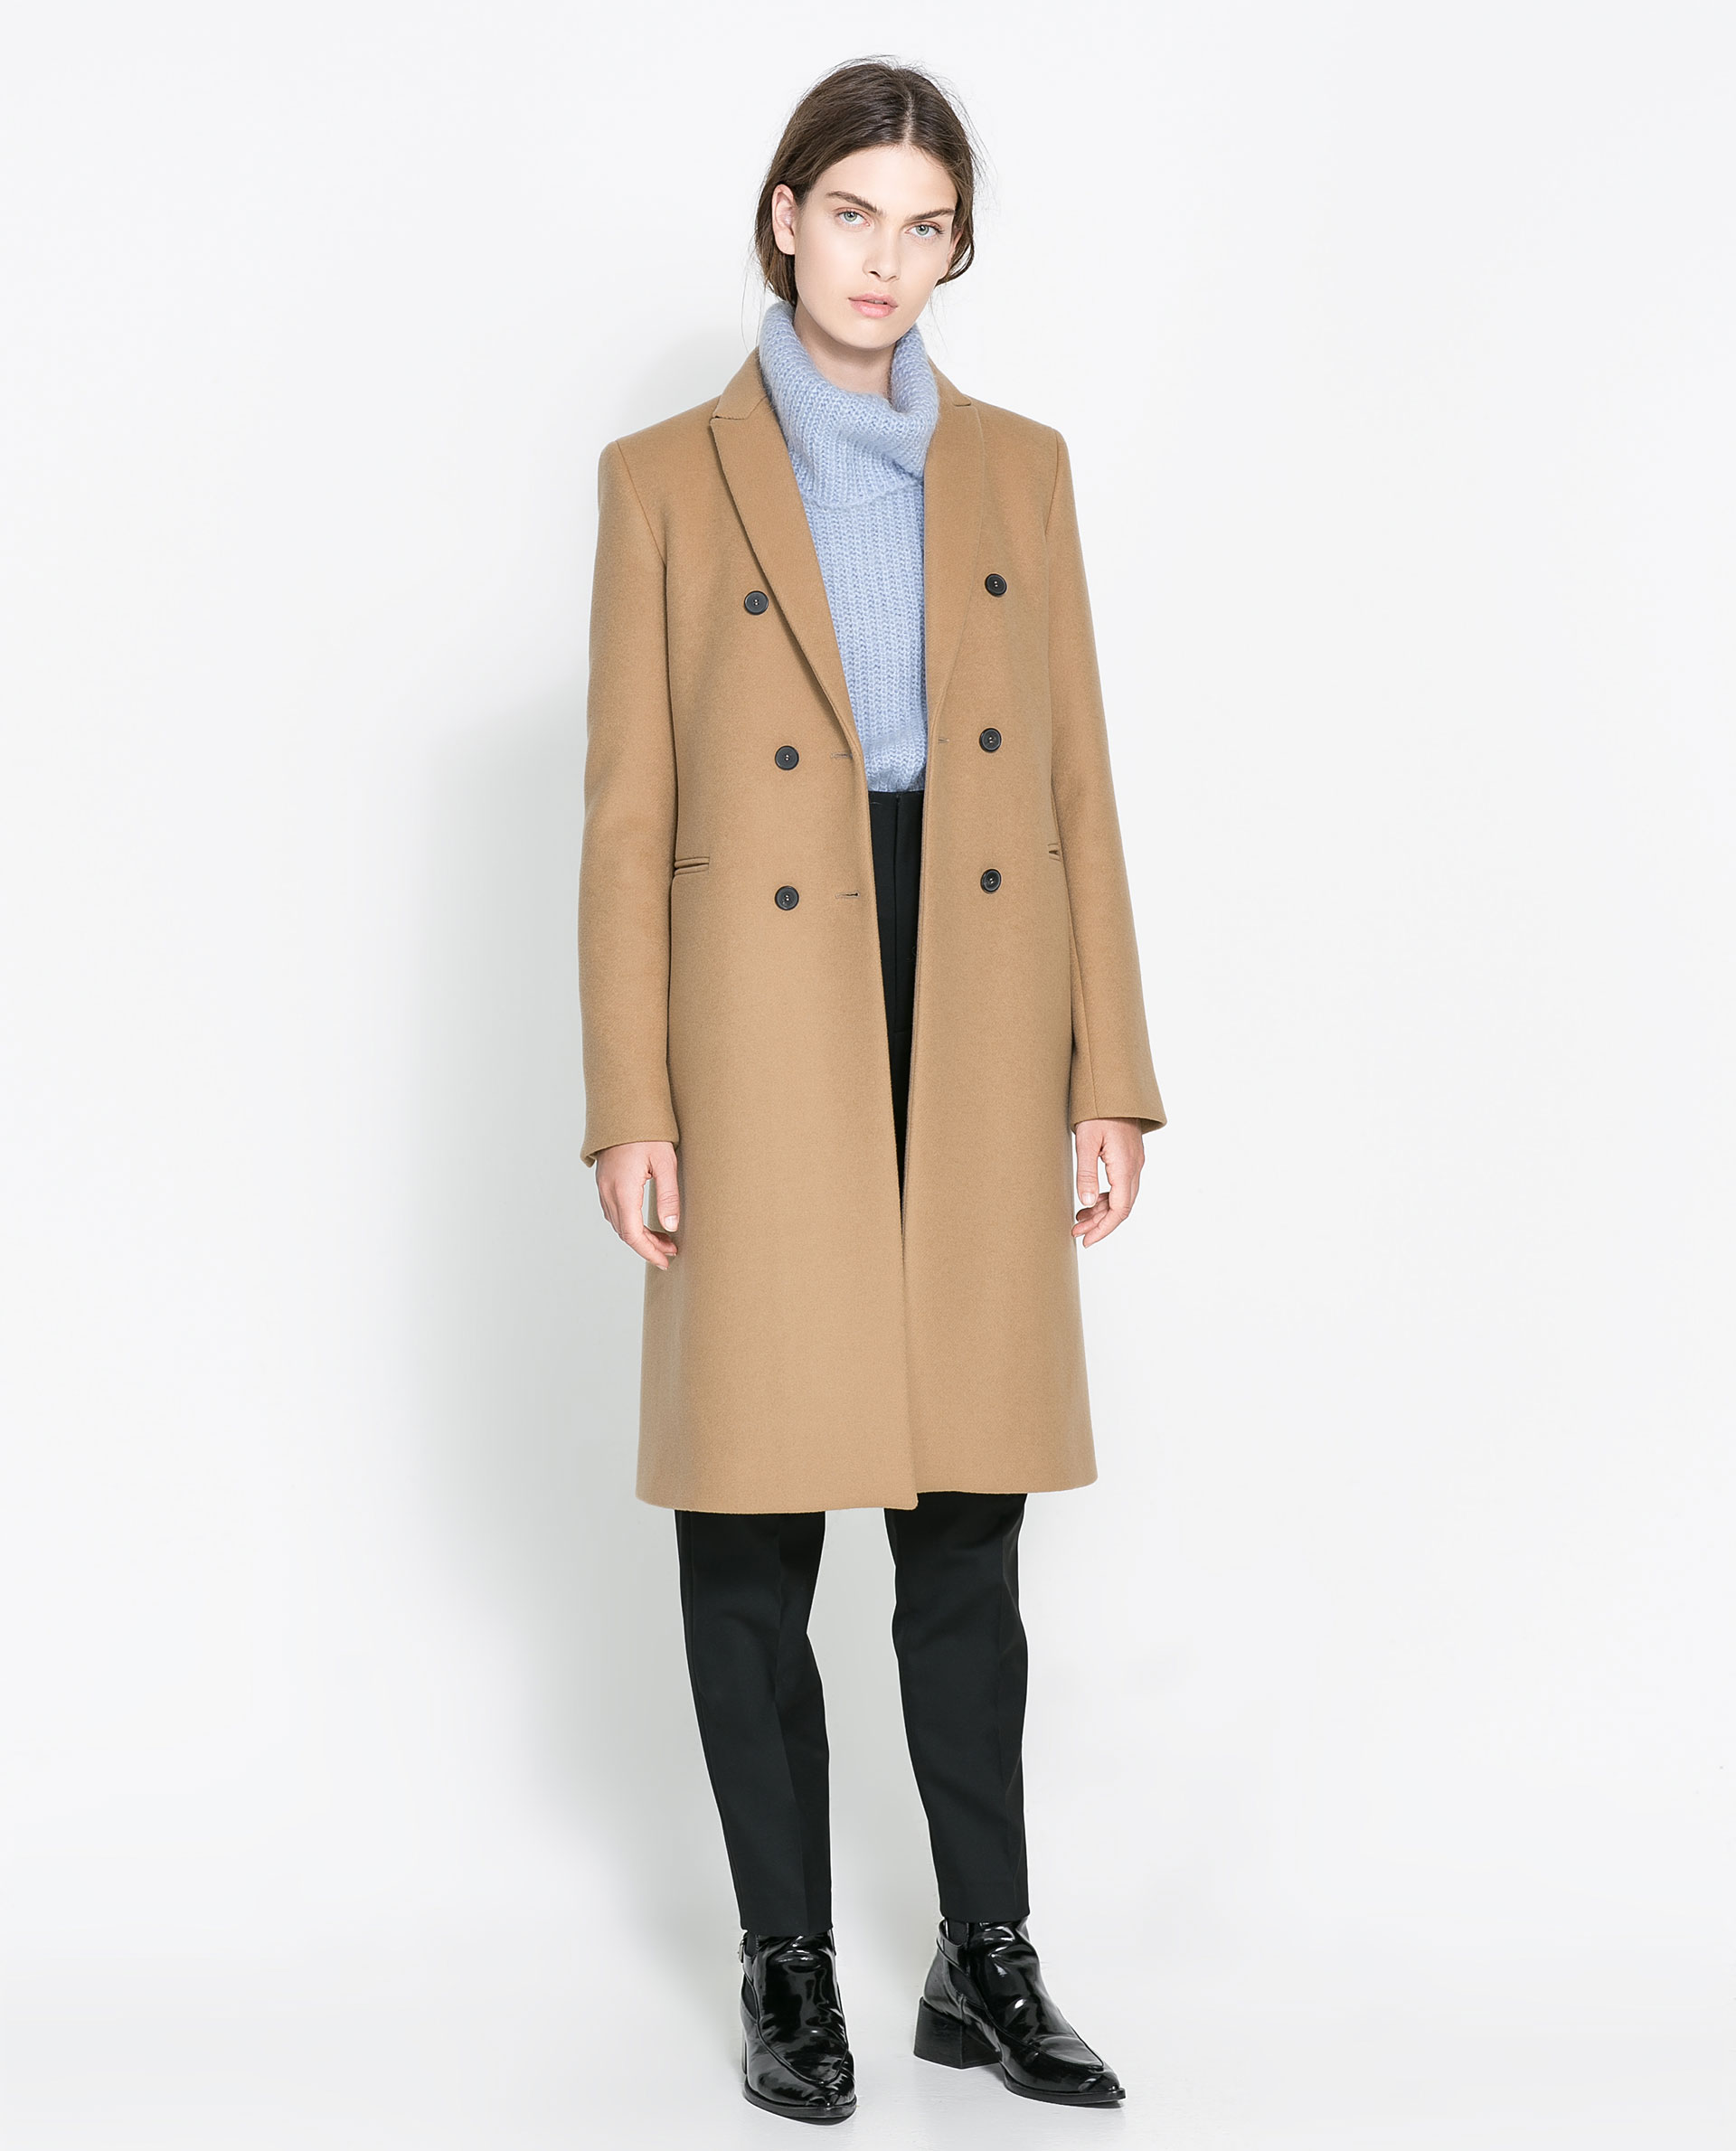 Zara womens coats 2016